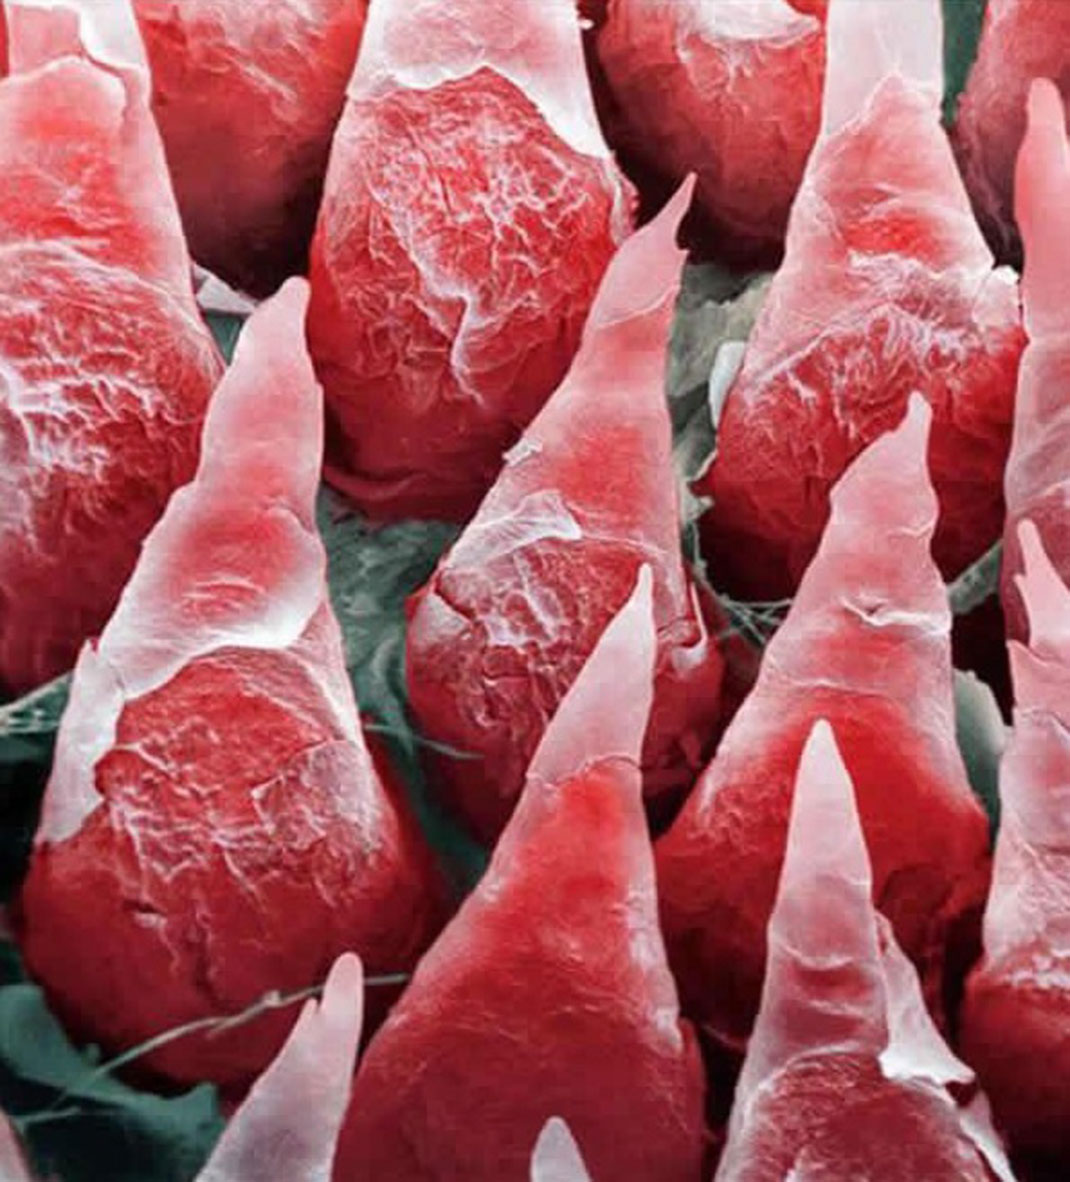 The human tongue seen by a microscope